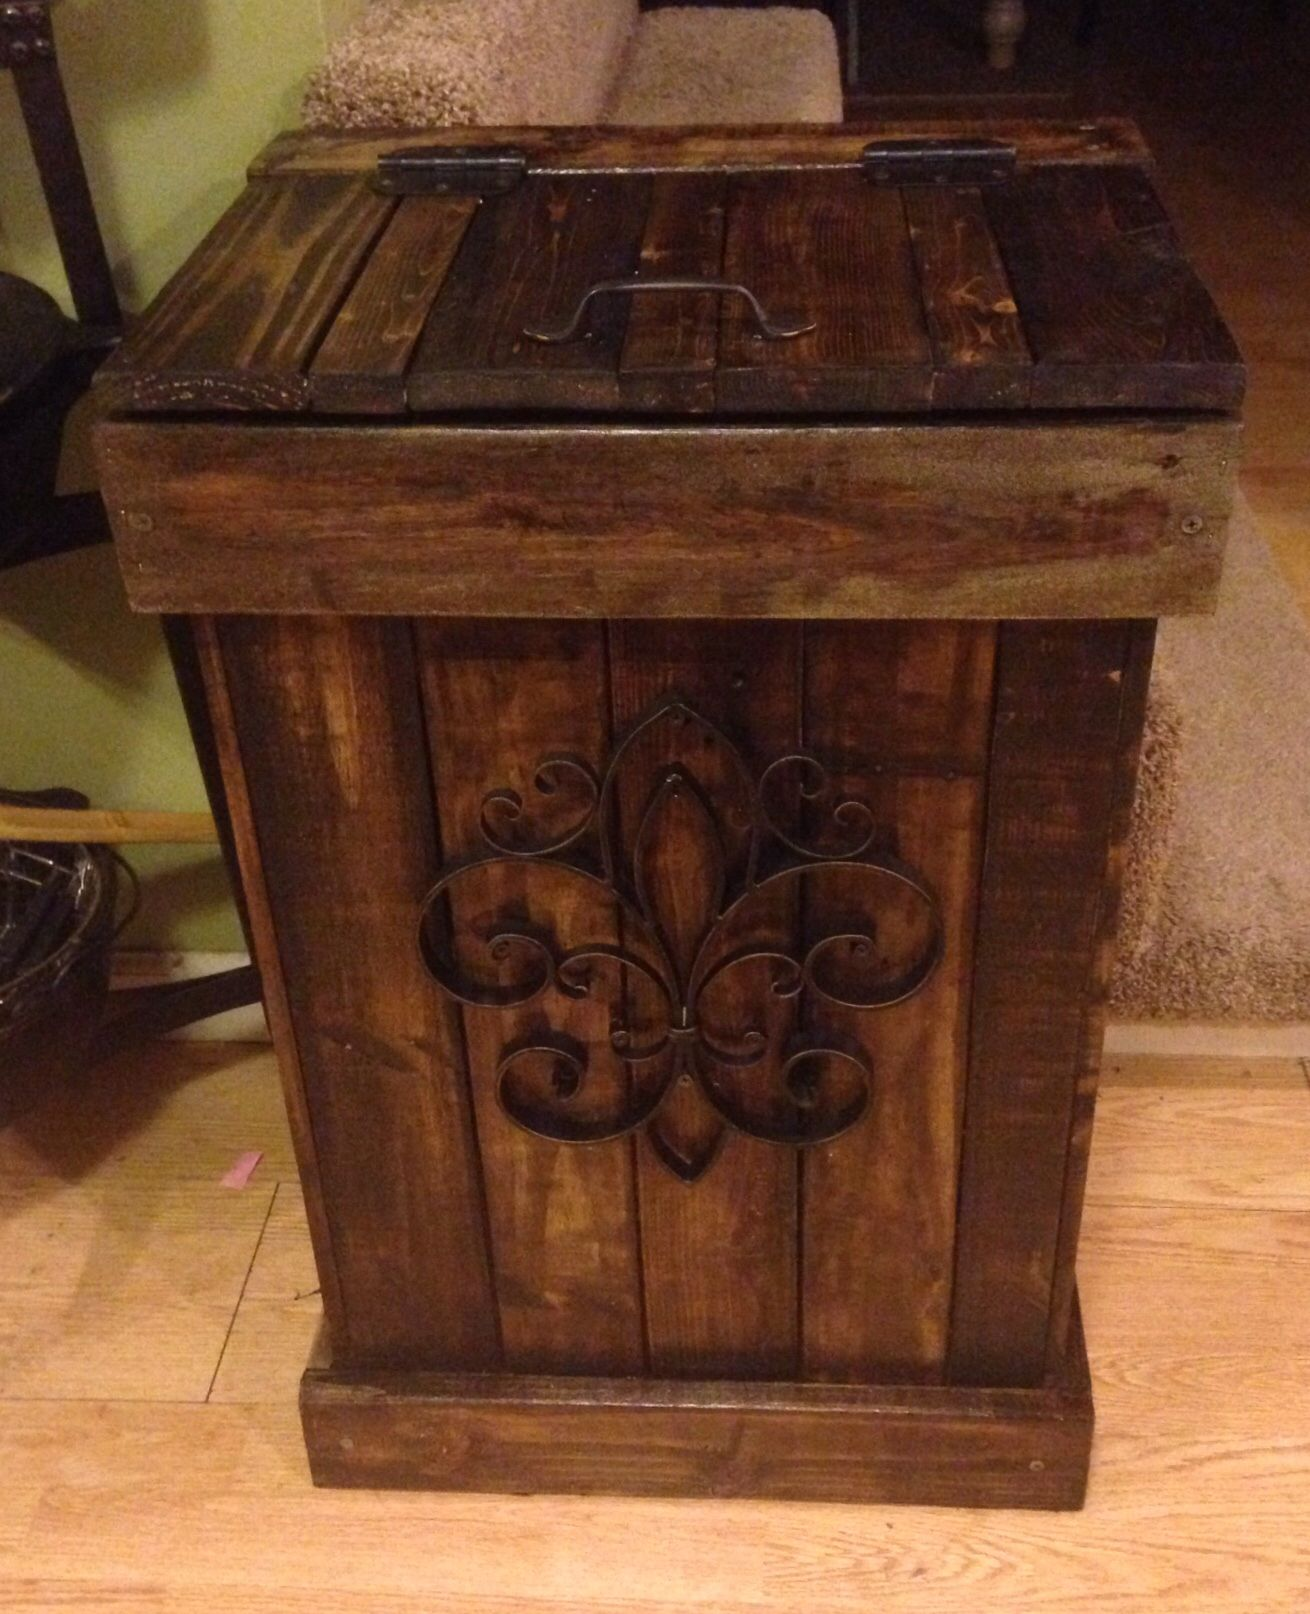 30 Gallon Kitchen Trash Can: 30 Gallon Wooden Trash Can Made From Wooden Pallets